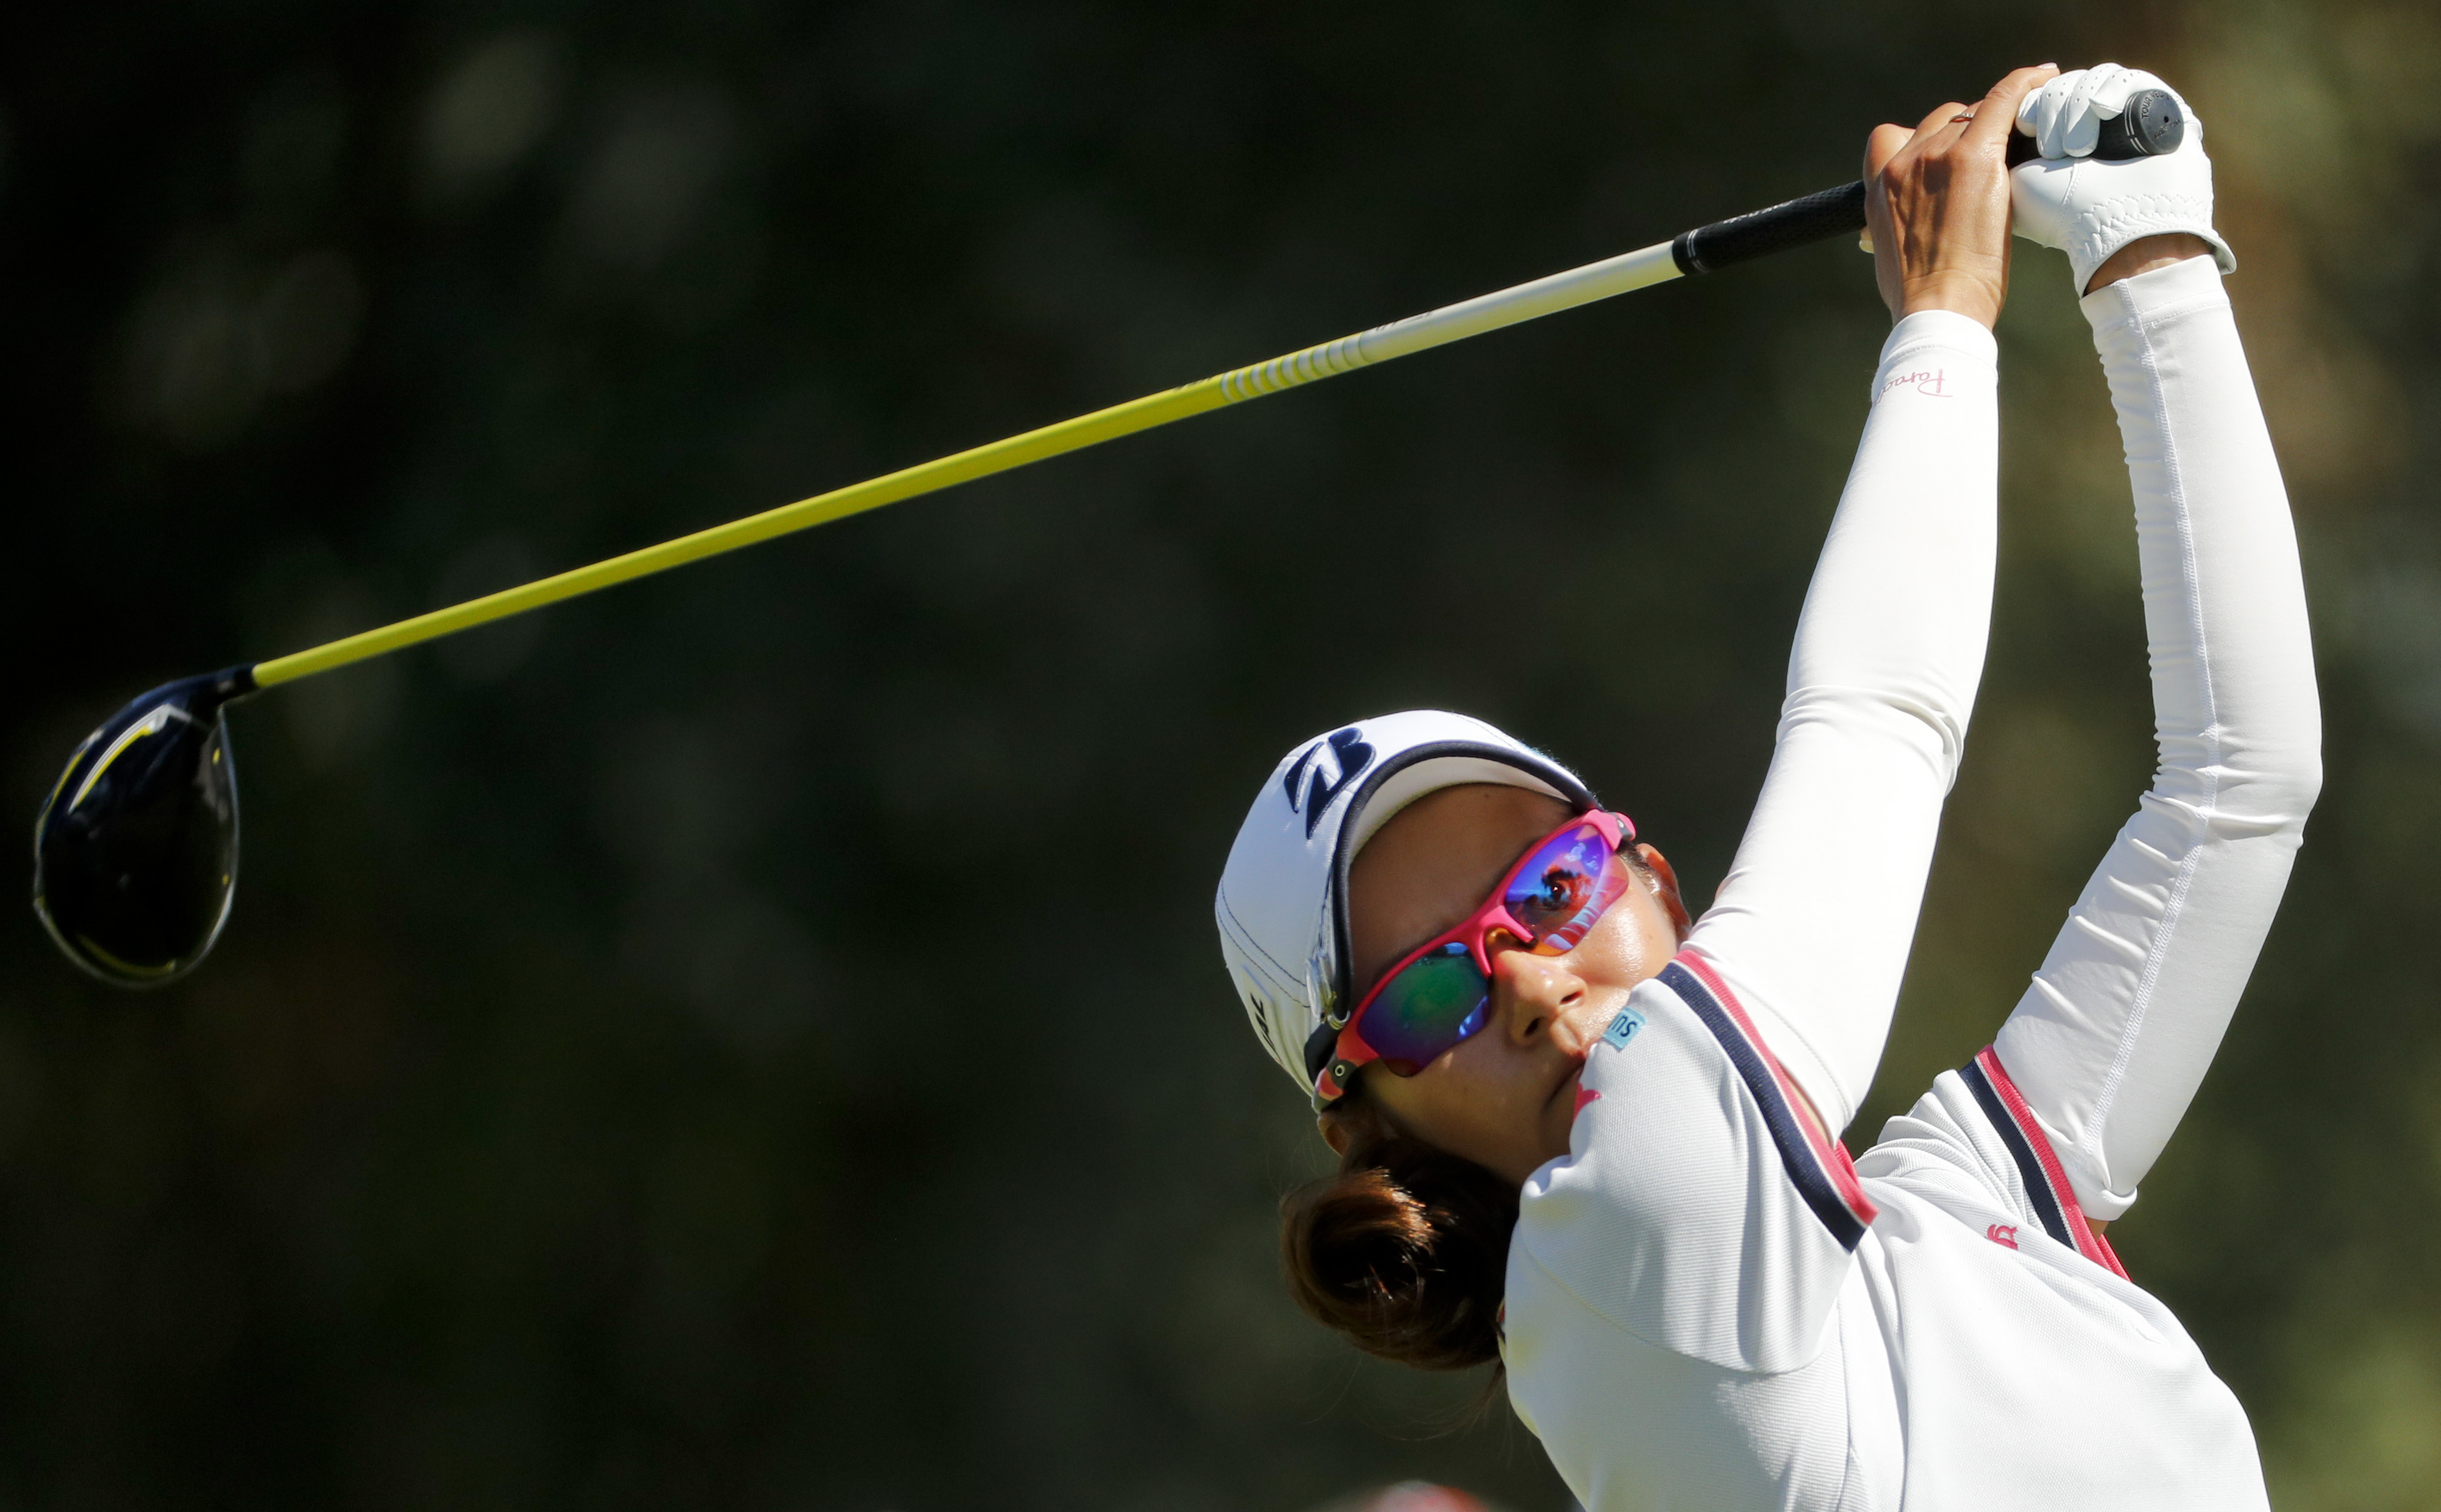 Ai Miyazato, of Japan, watches her hit shot on the 16th hole during the second round of the LPGA Tour ANA Inspiration golf tournament at Mission Hills Country Club, Friday, April 1, 2016, in Rancho Mirage, Calif. (AP Photo/Chris